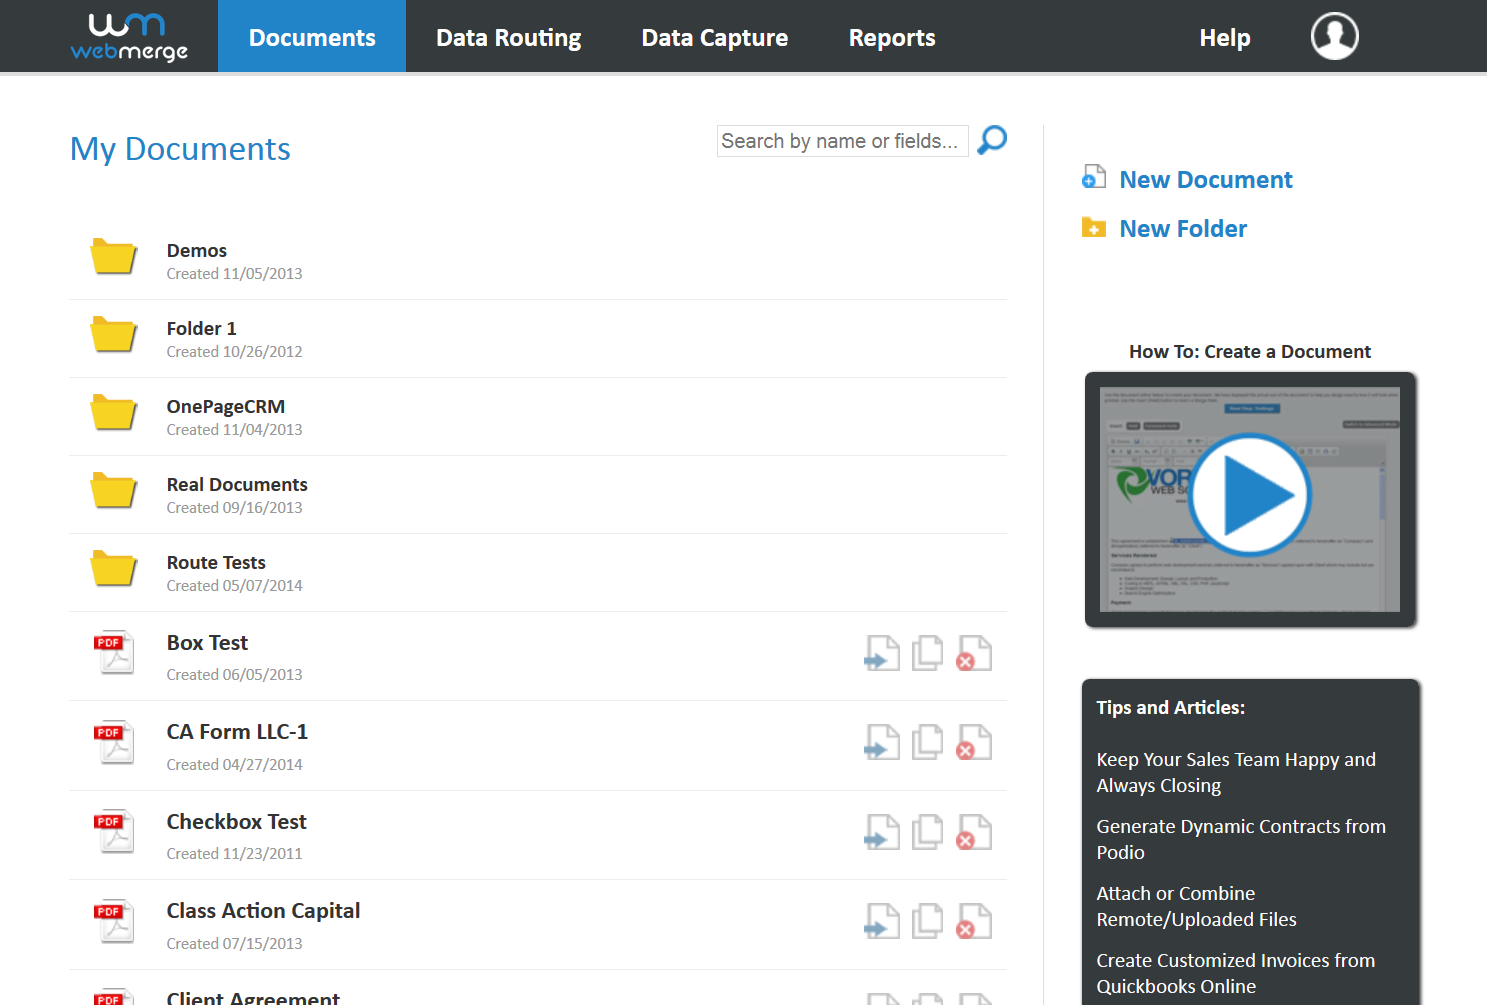 Formstack Documents Manage documents from a dashboard